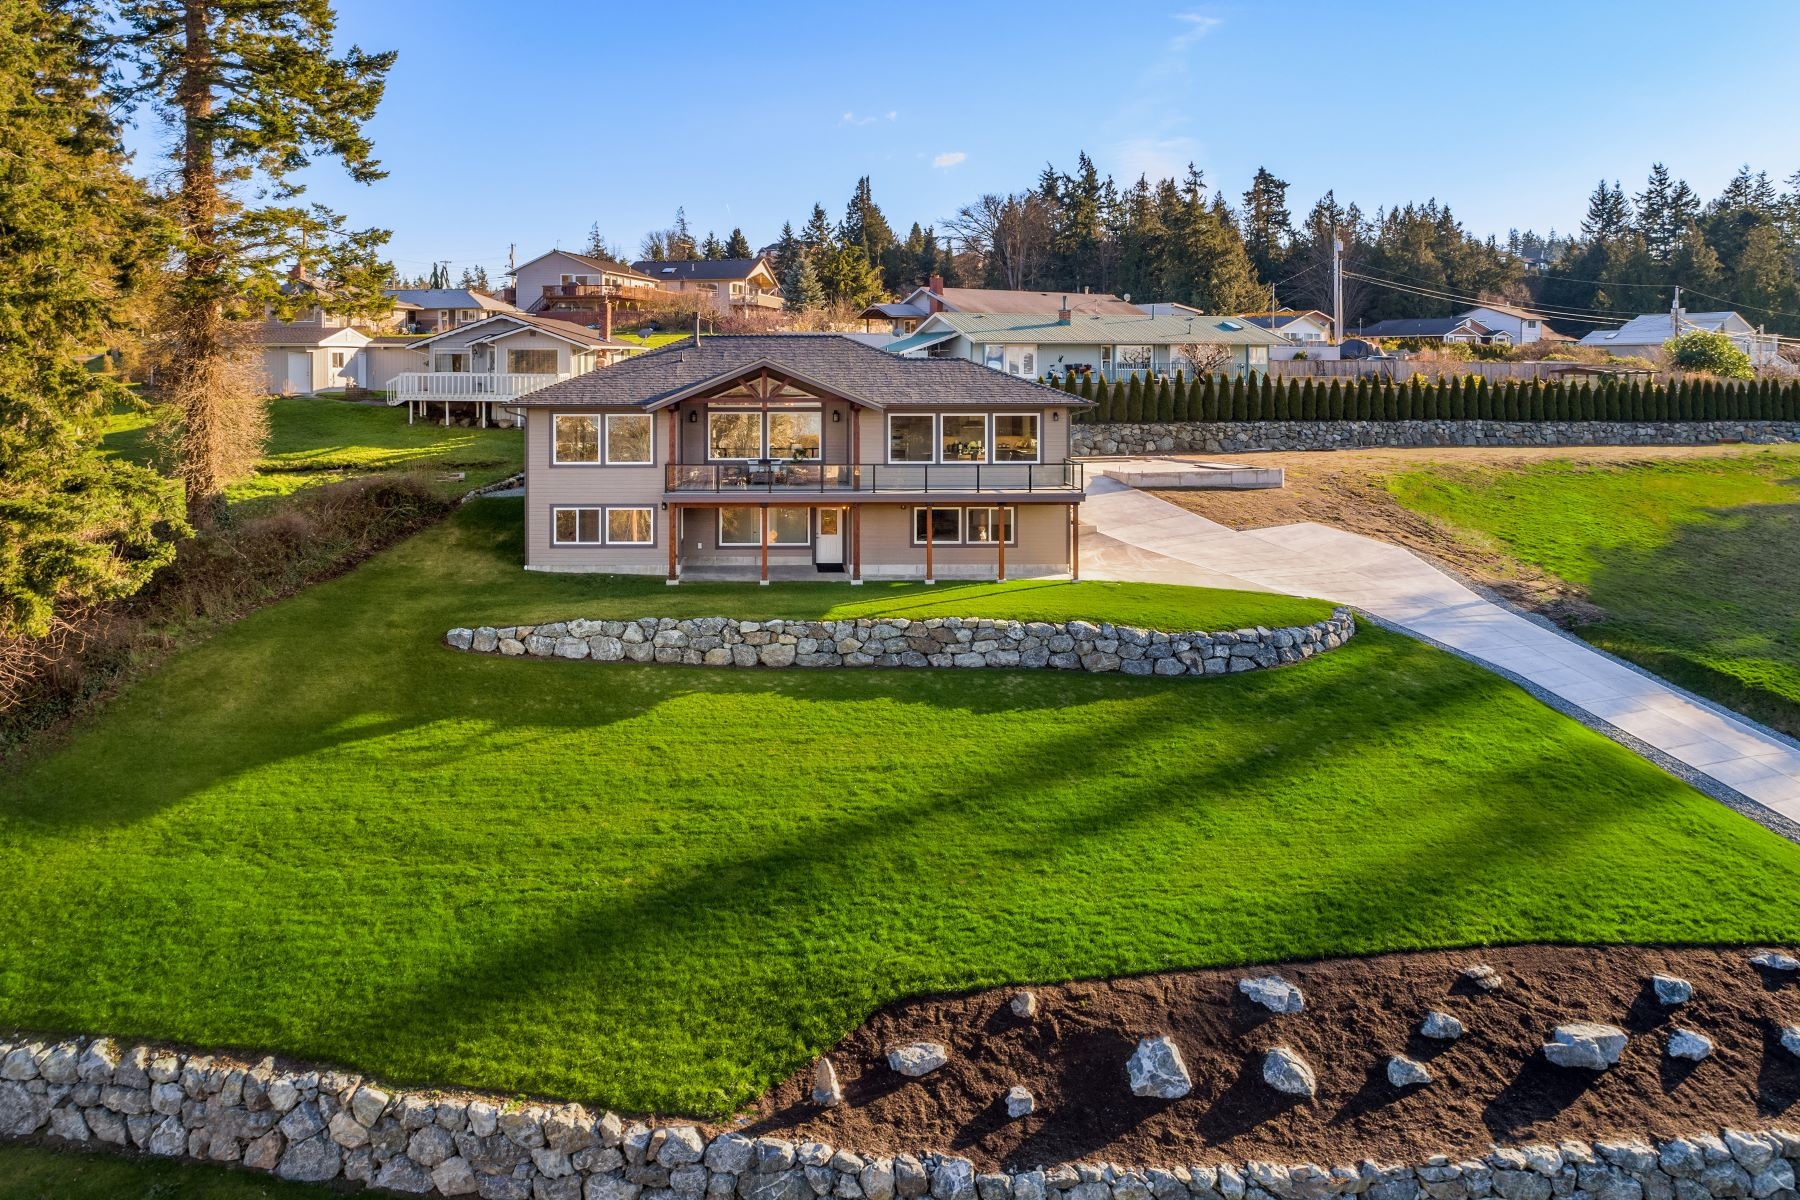 Single Family Homes for Sale at 182 Utsalady Rd, Camano, WA 98282 182 Utsalady Rd Camano, Washington 98282 United States